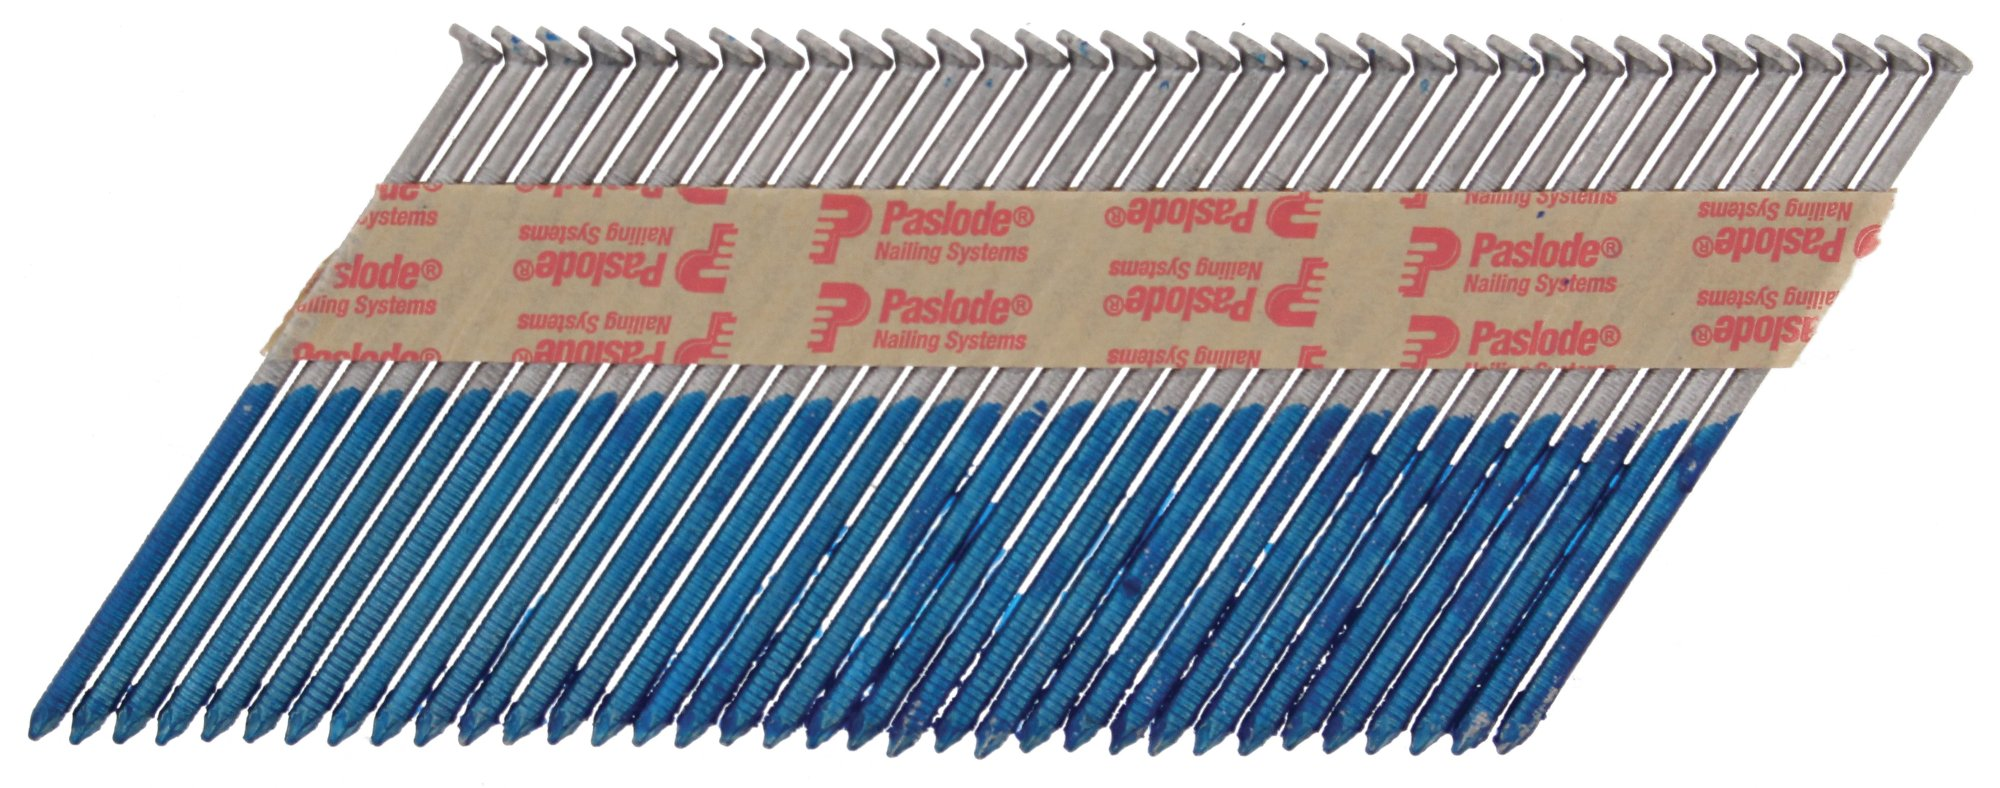 IM360Ci Paslode Rink Shank Hot Dipped Galv Nail Fuel Pack (2500)